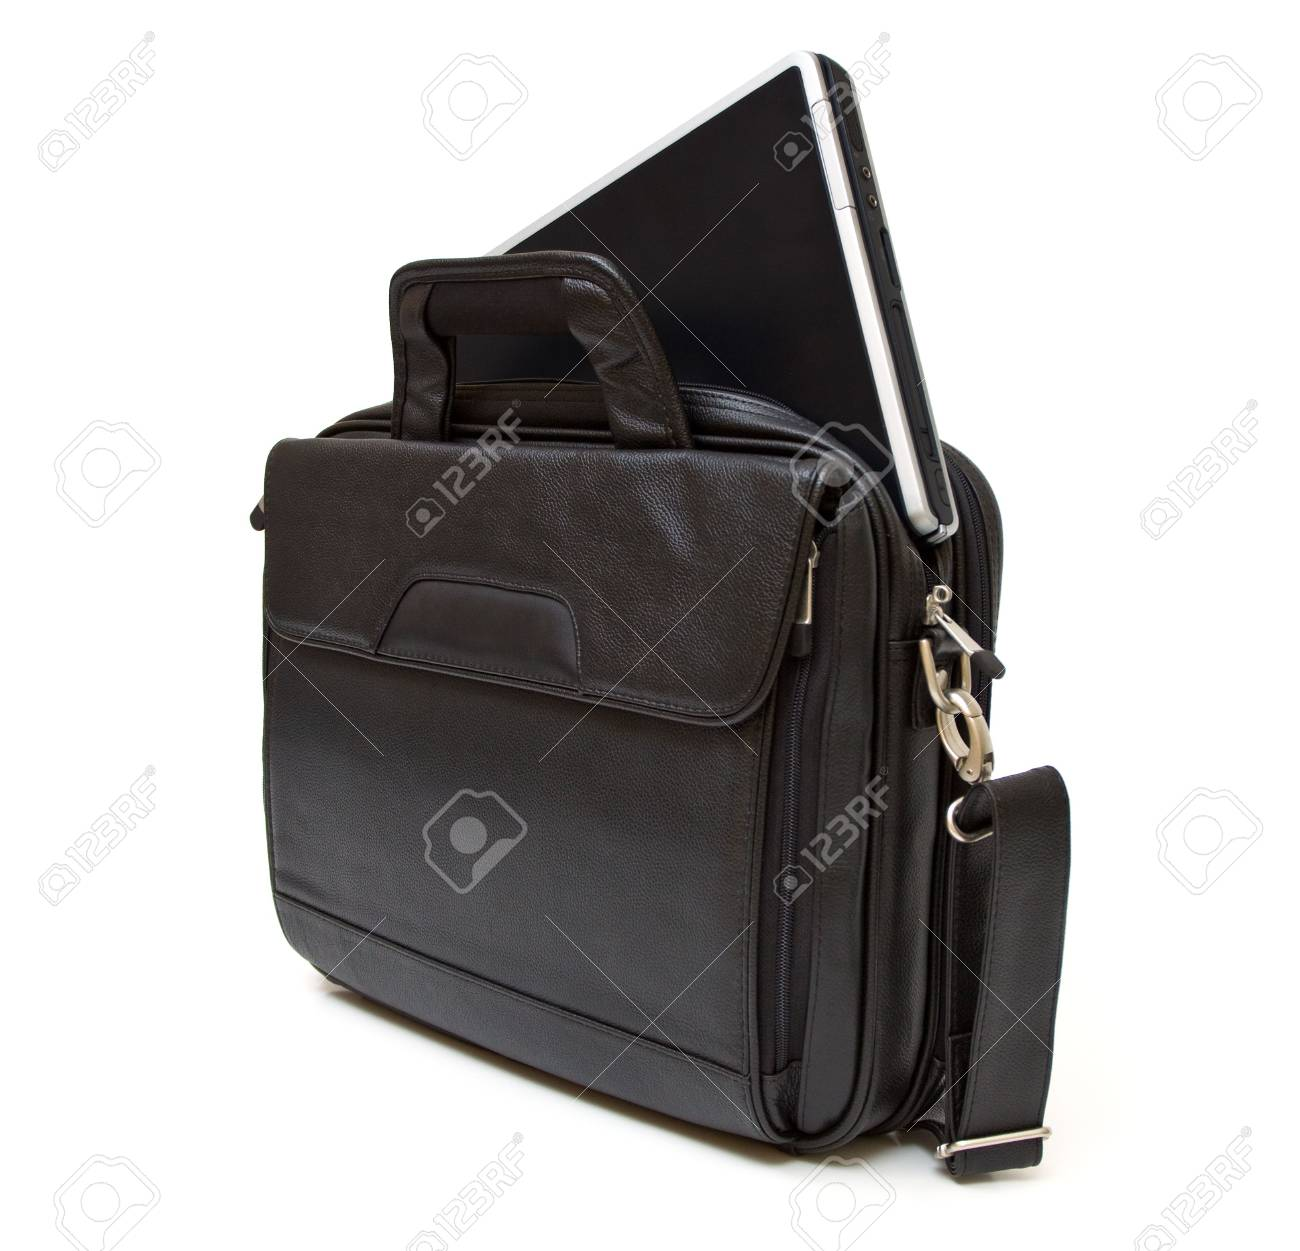 6bfbc35bc265 Leather Business Computer Bags